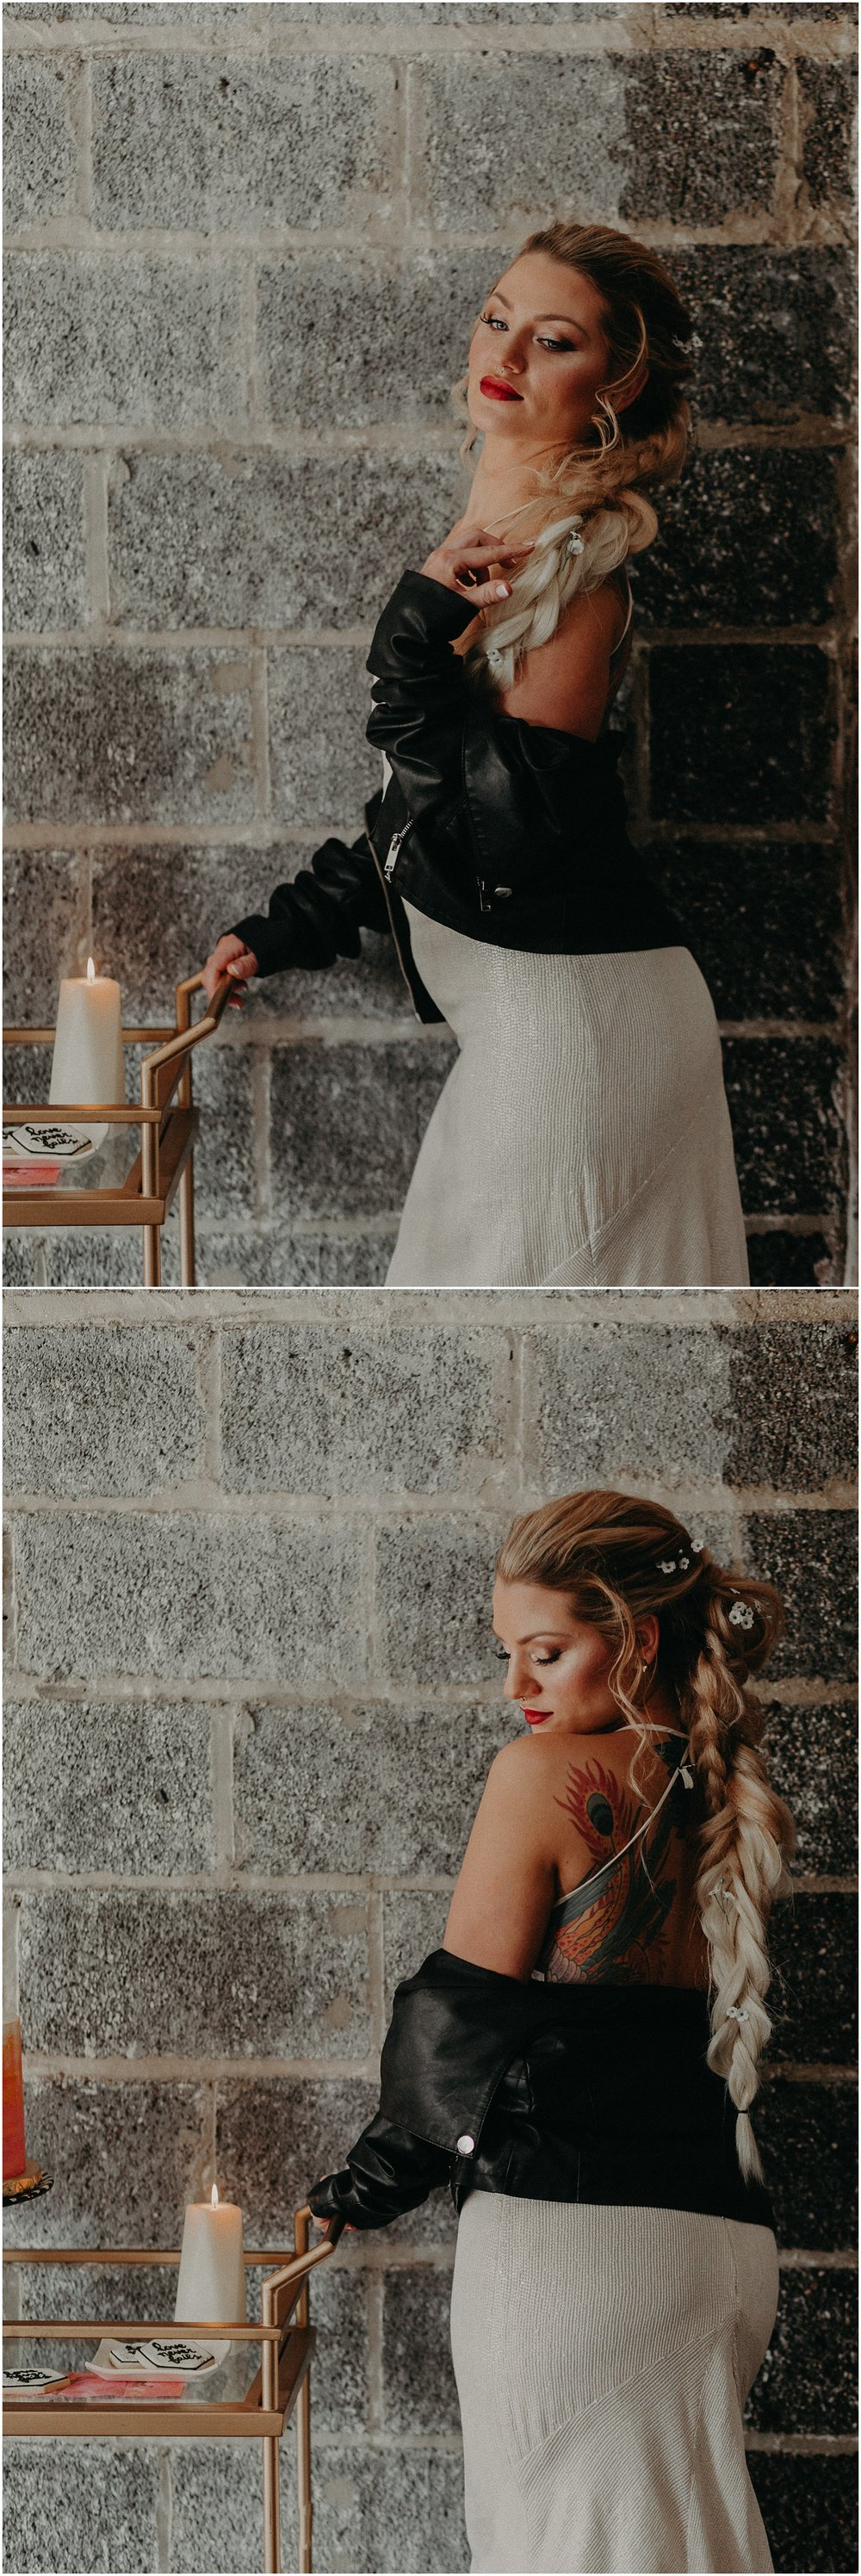 styled shoot-bridal portraits-portraits-bride-rock and roll-industrial-urban-wedding-inspiration-nj-new jersey-nyc-new york city-art-diy wedding_0079.jpg